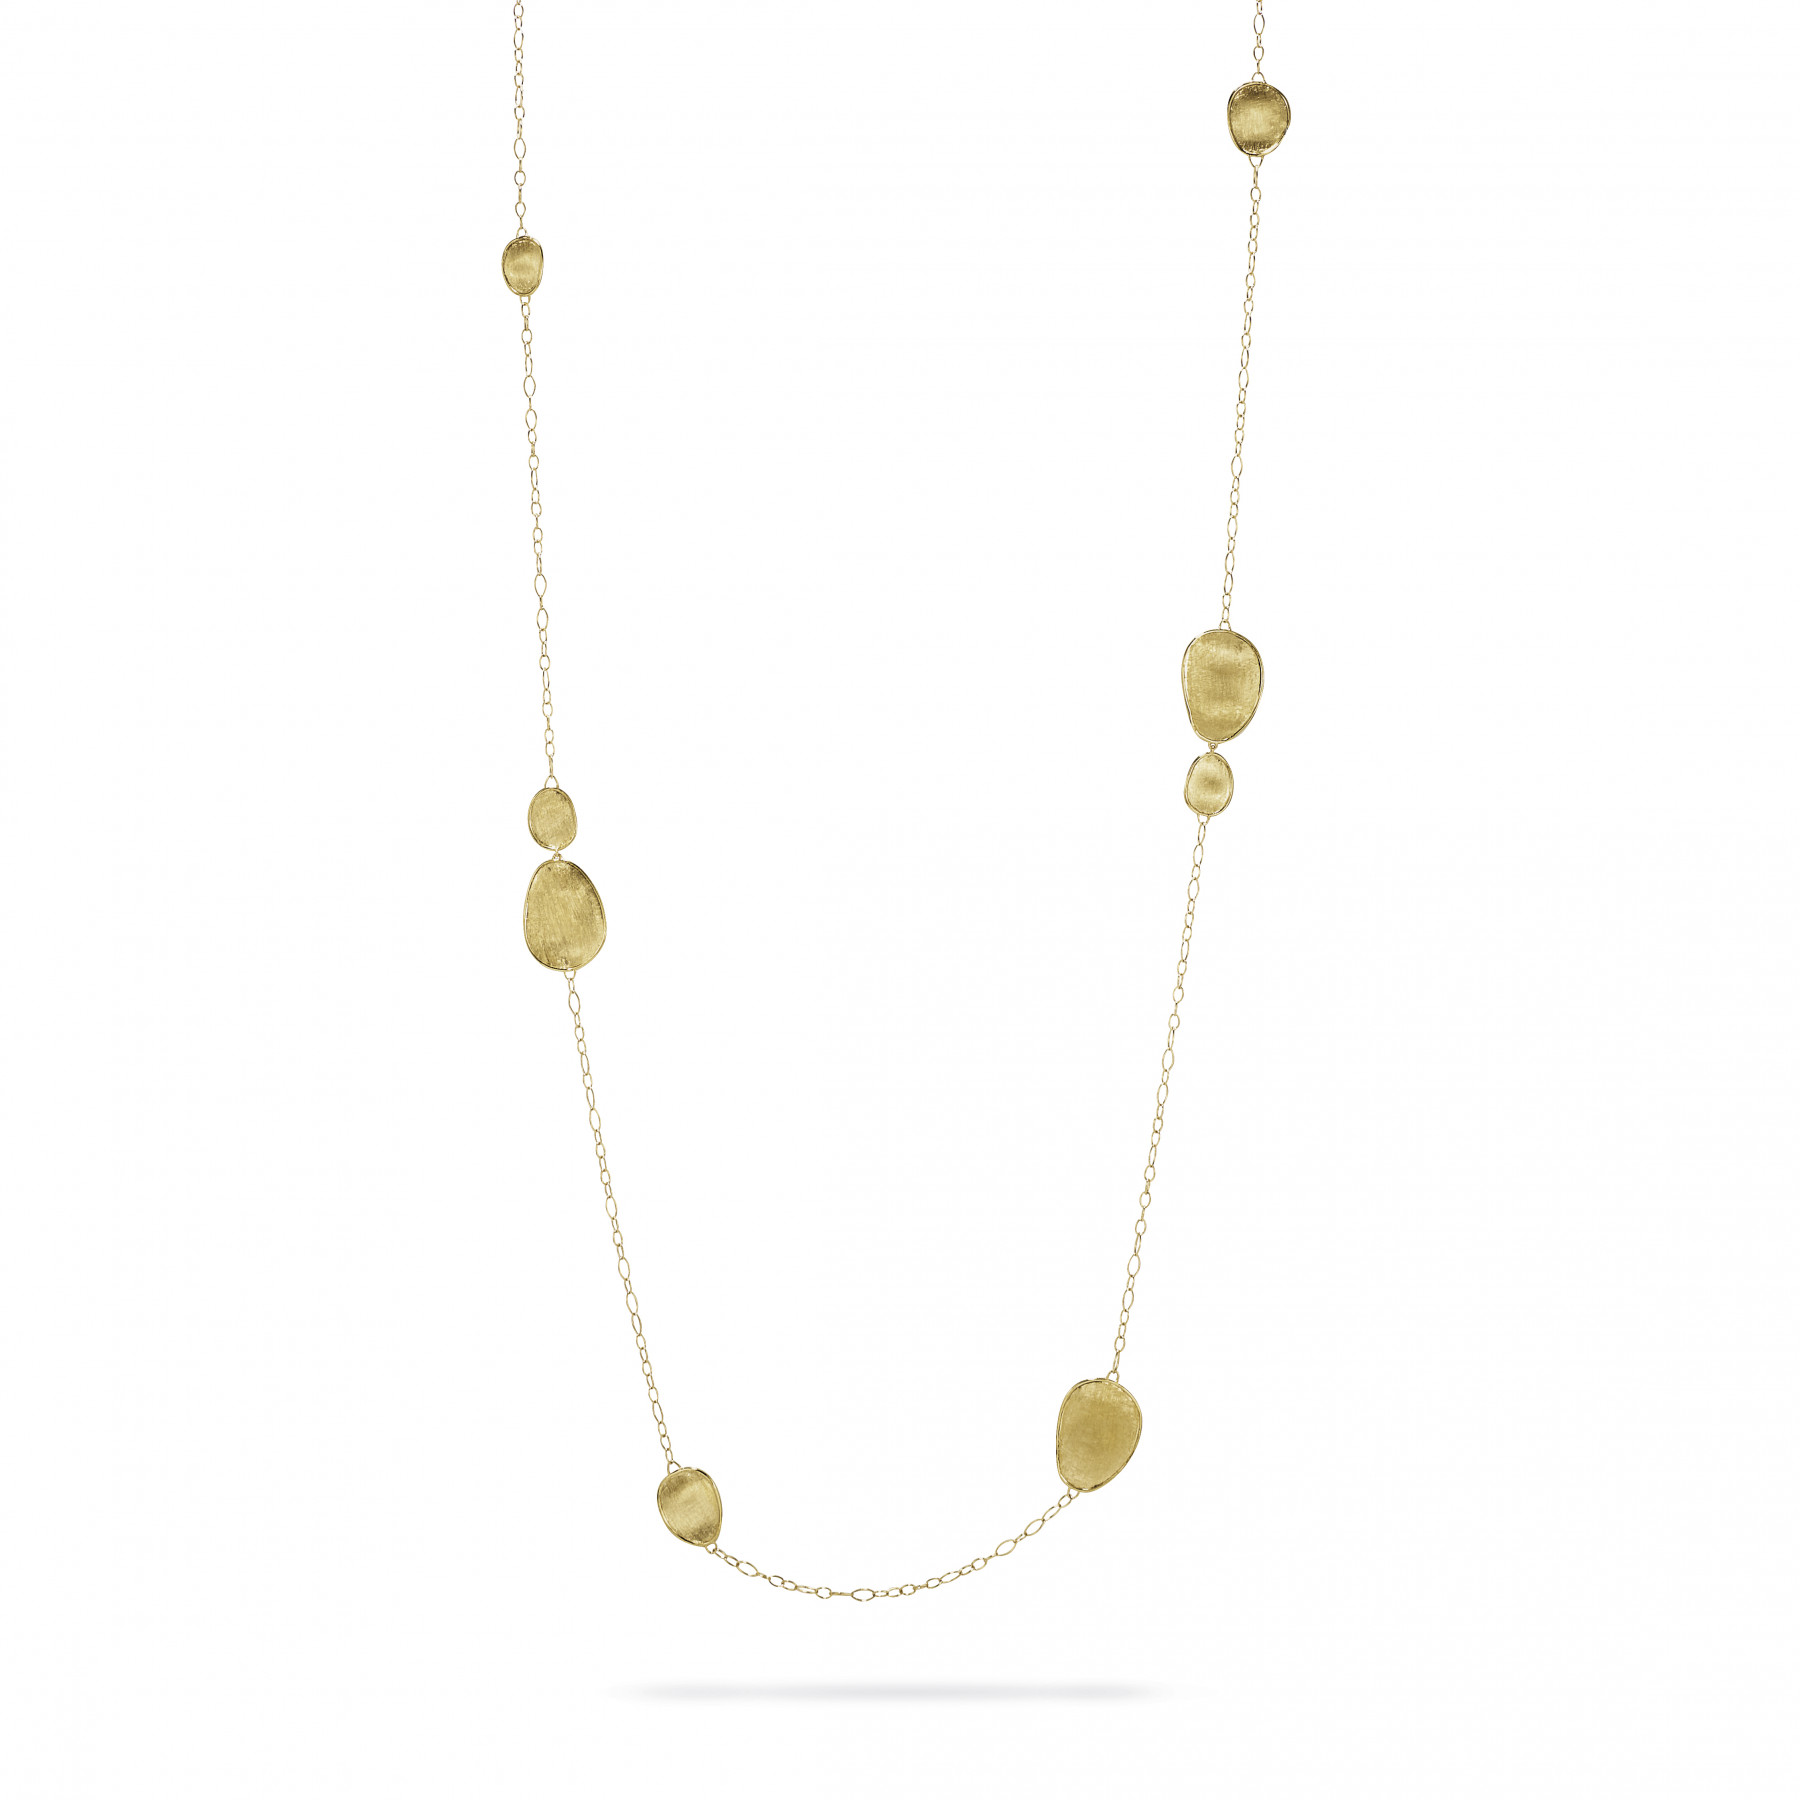 Marco Bicego Lunaria Gold Necklace